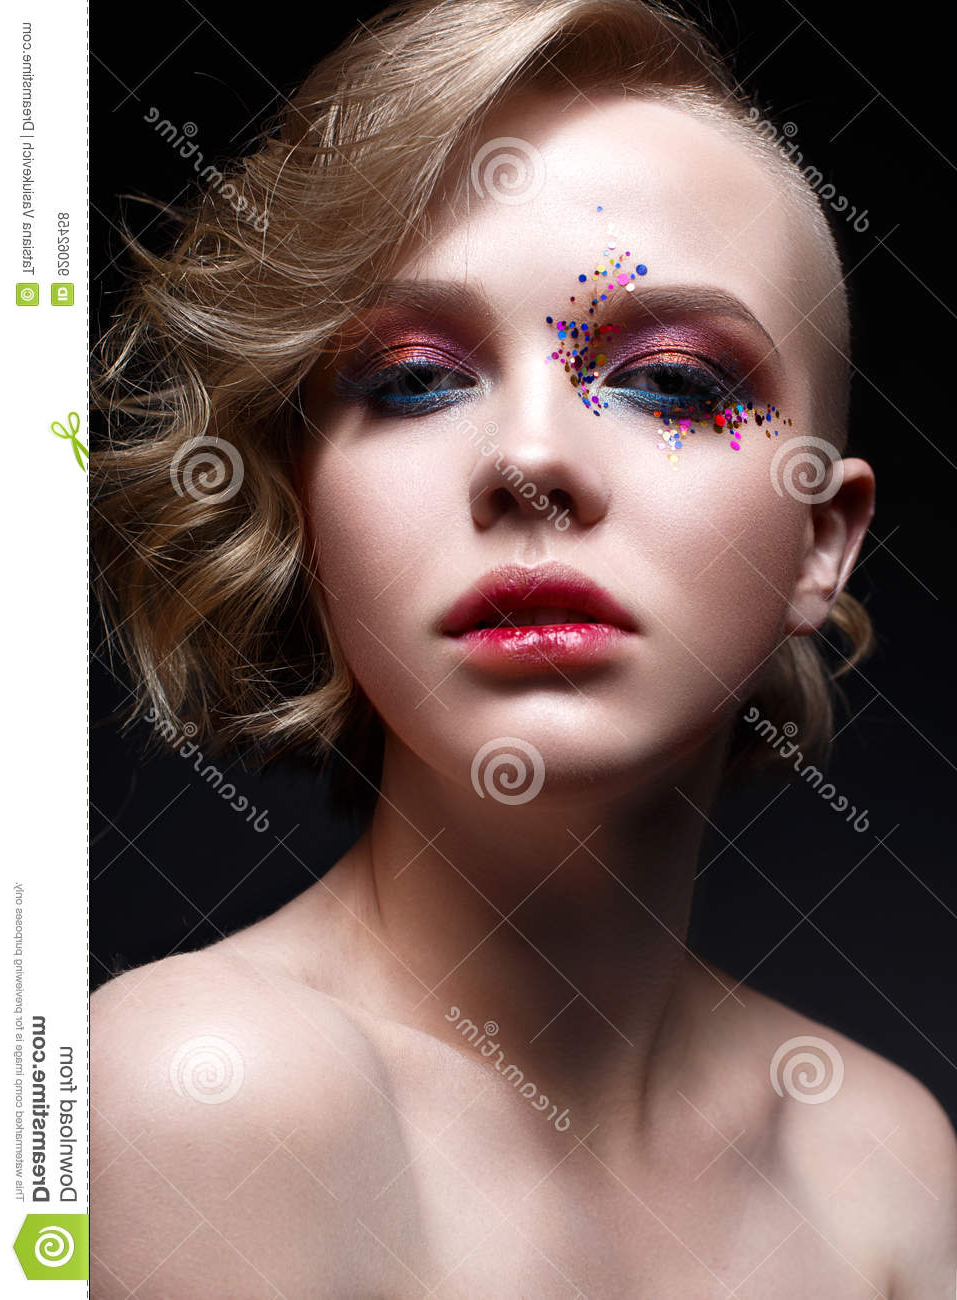 A Young Girl With A Short Haircut And Bright Creative Makeup. A Pertaining To Young Girl Short Hairstyles (Gallery 24 of 25)